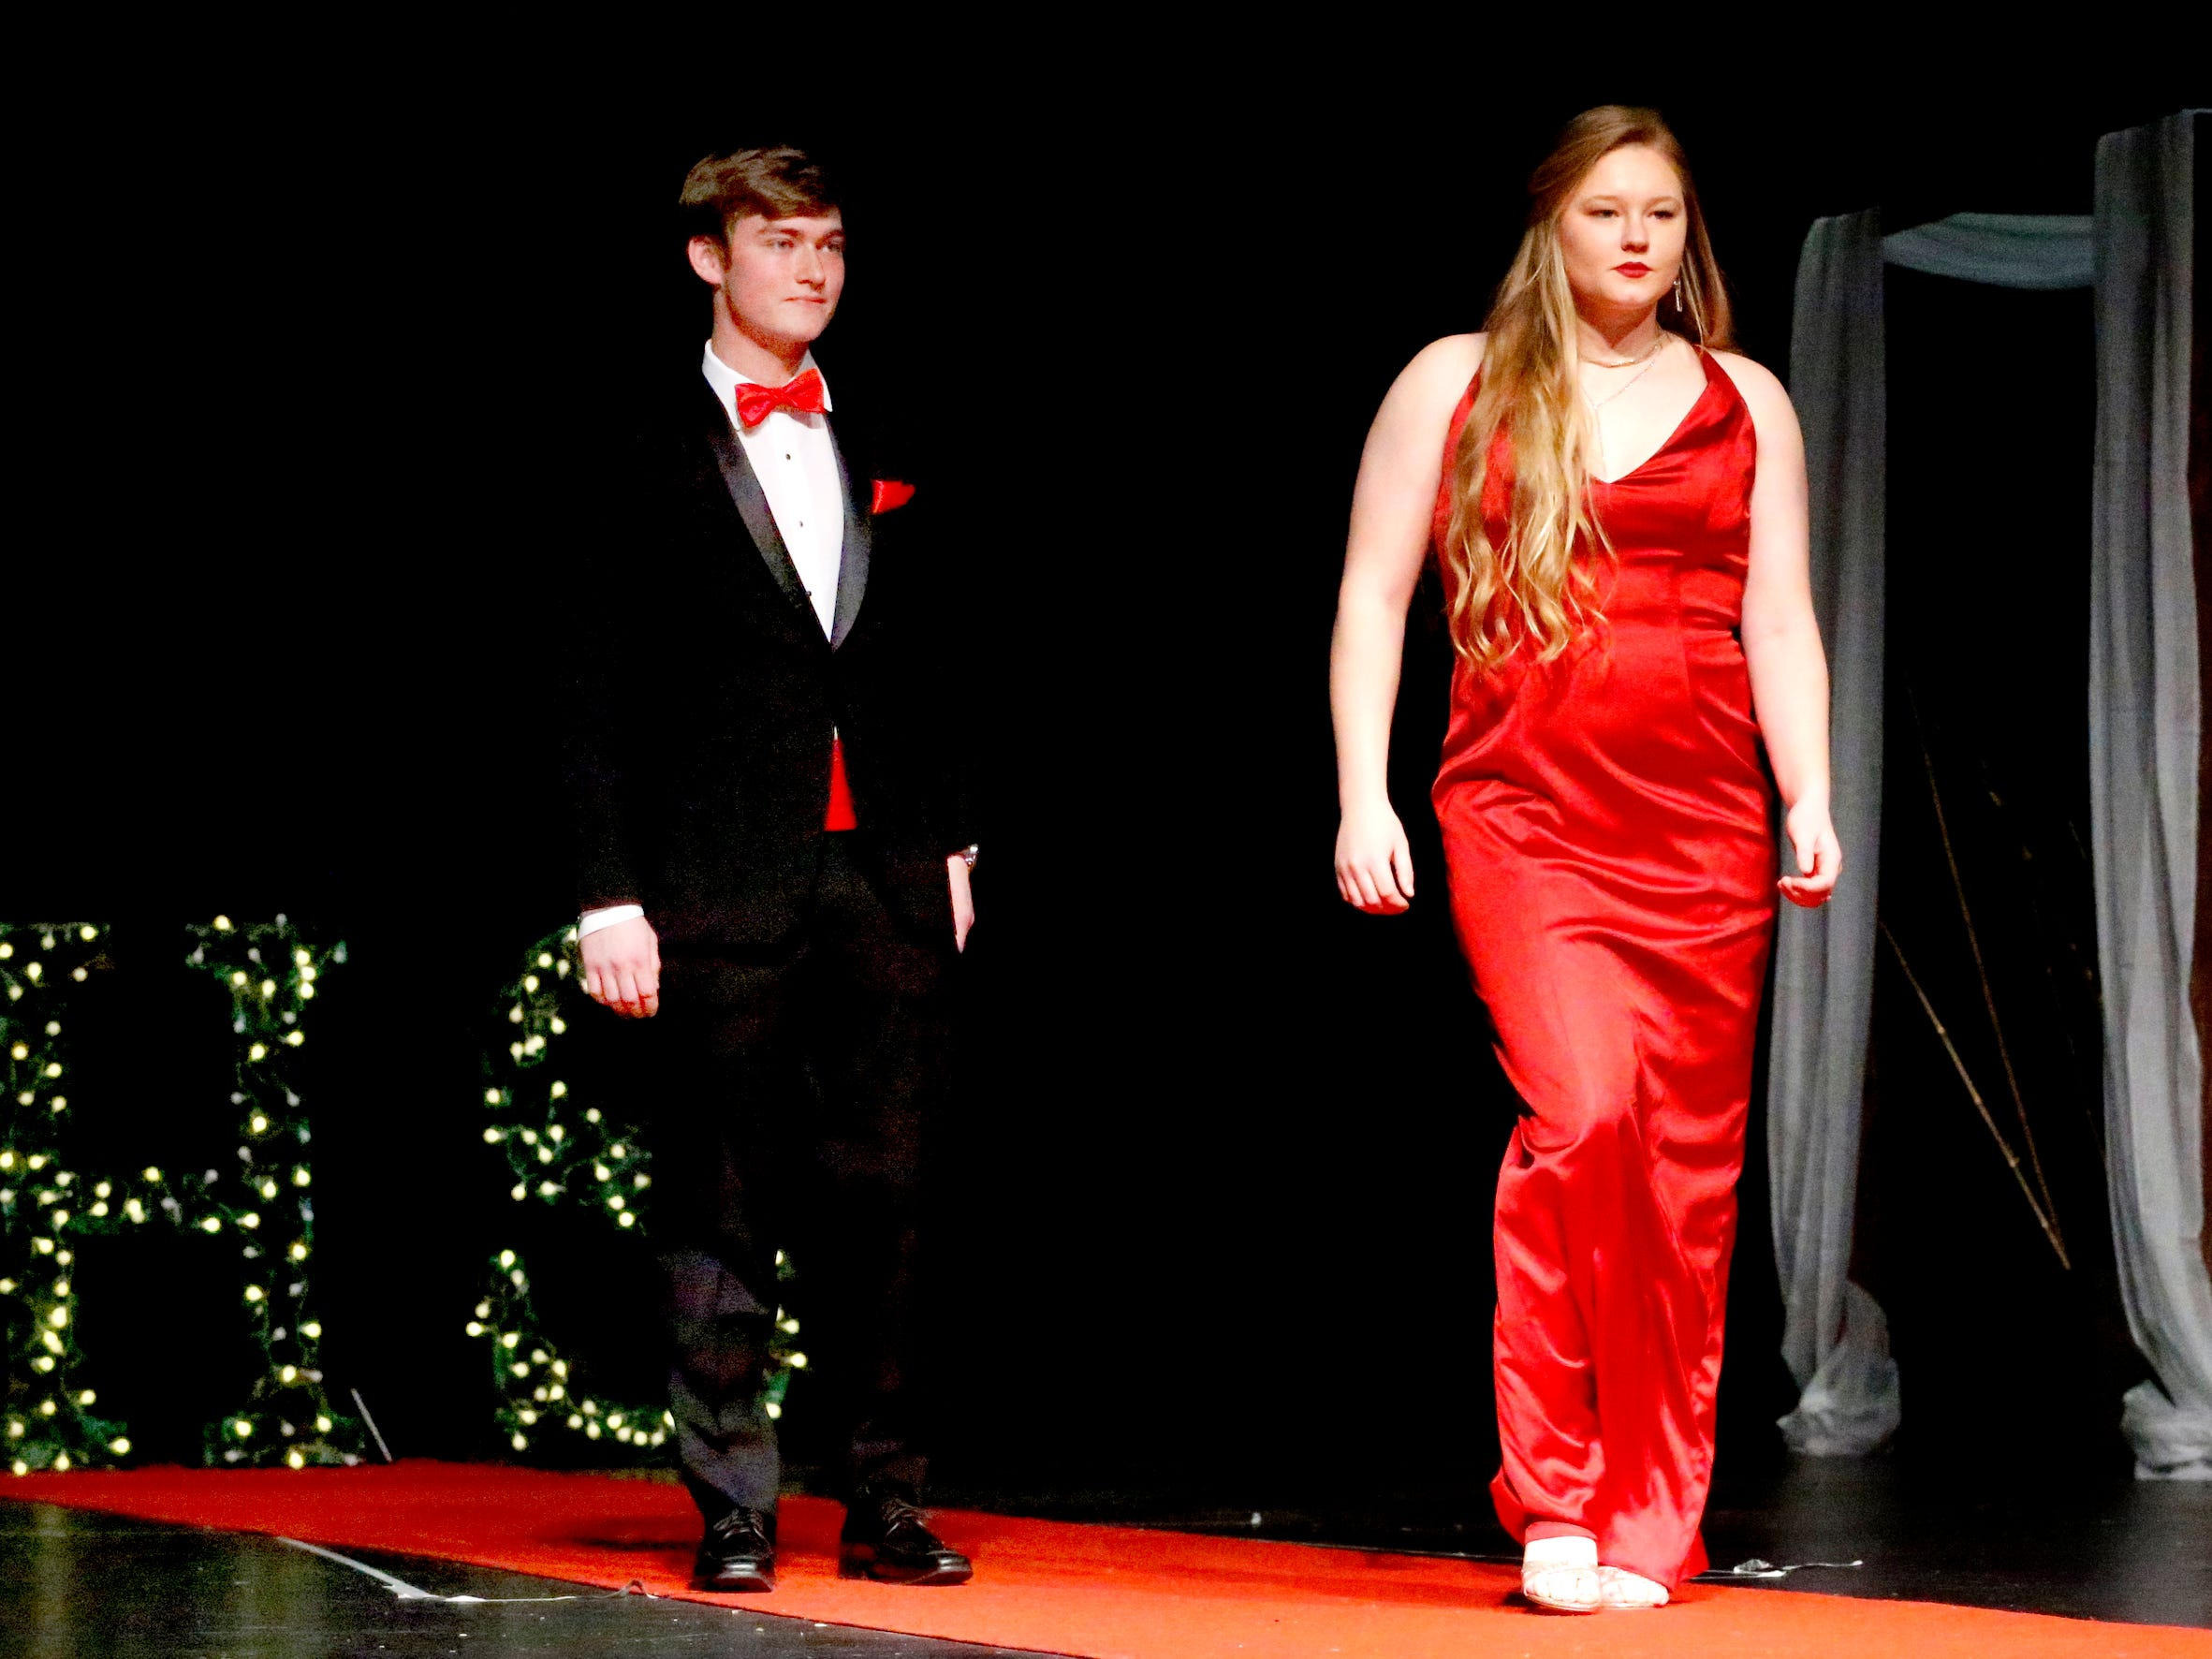 Jackson Jordan, left and Hannah Milhorn, right show off the latest in prom fashions during the Siegel Prom Fashion show on Thursday, Feb. 14, 2019.